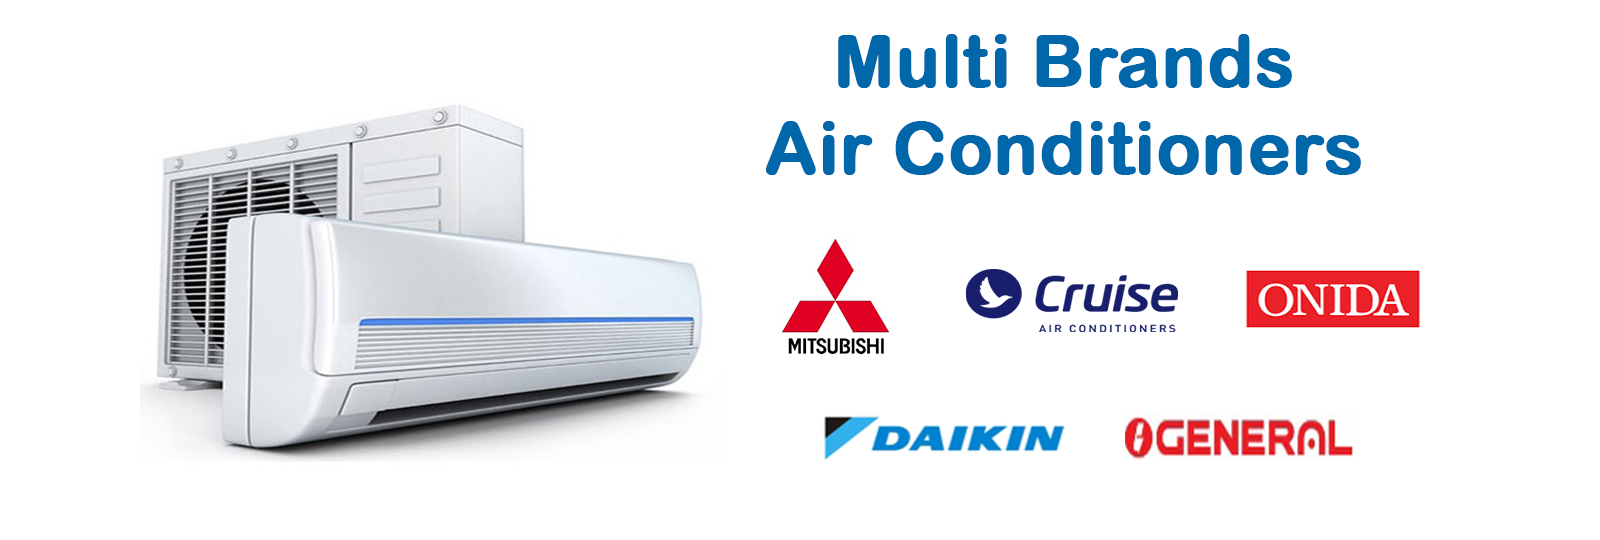 Multi Brands Air Conditioners